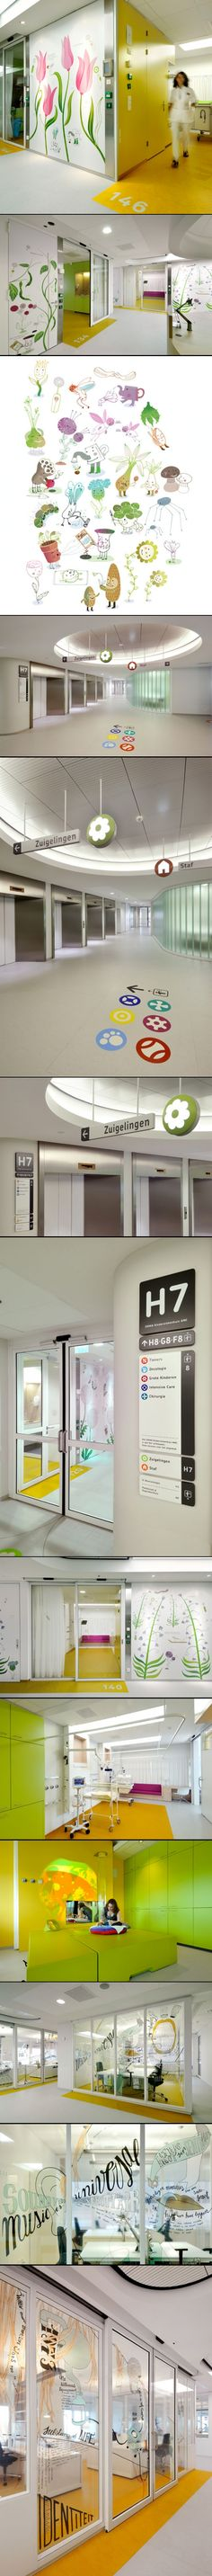 Emma Children's Hospital EKZ, Netherlands - Healthcare Interiors - Wayfinding, Orientation and Art - Healing Environmental Design